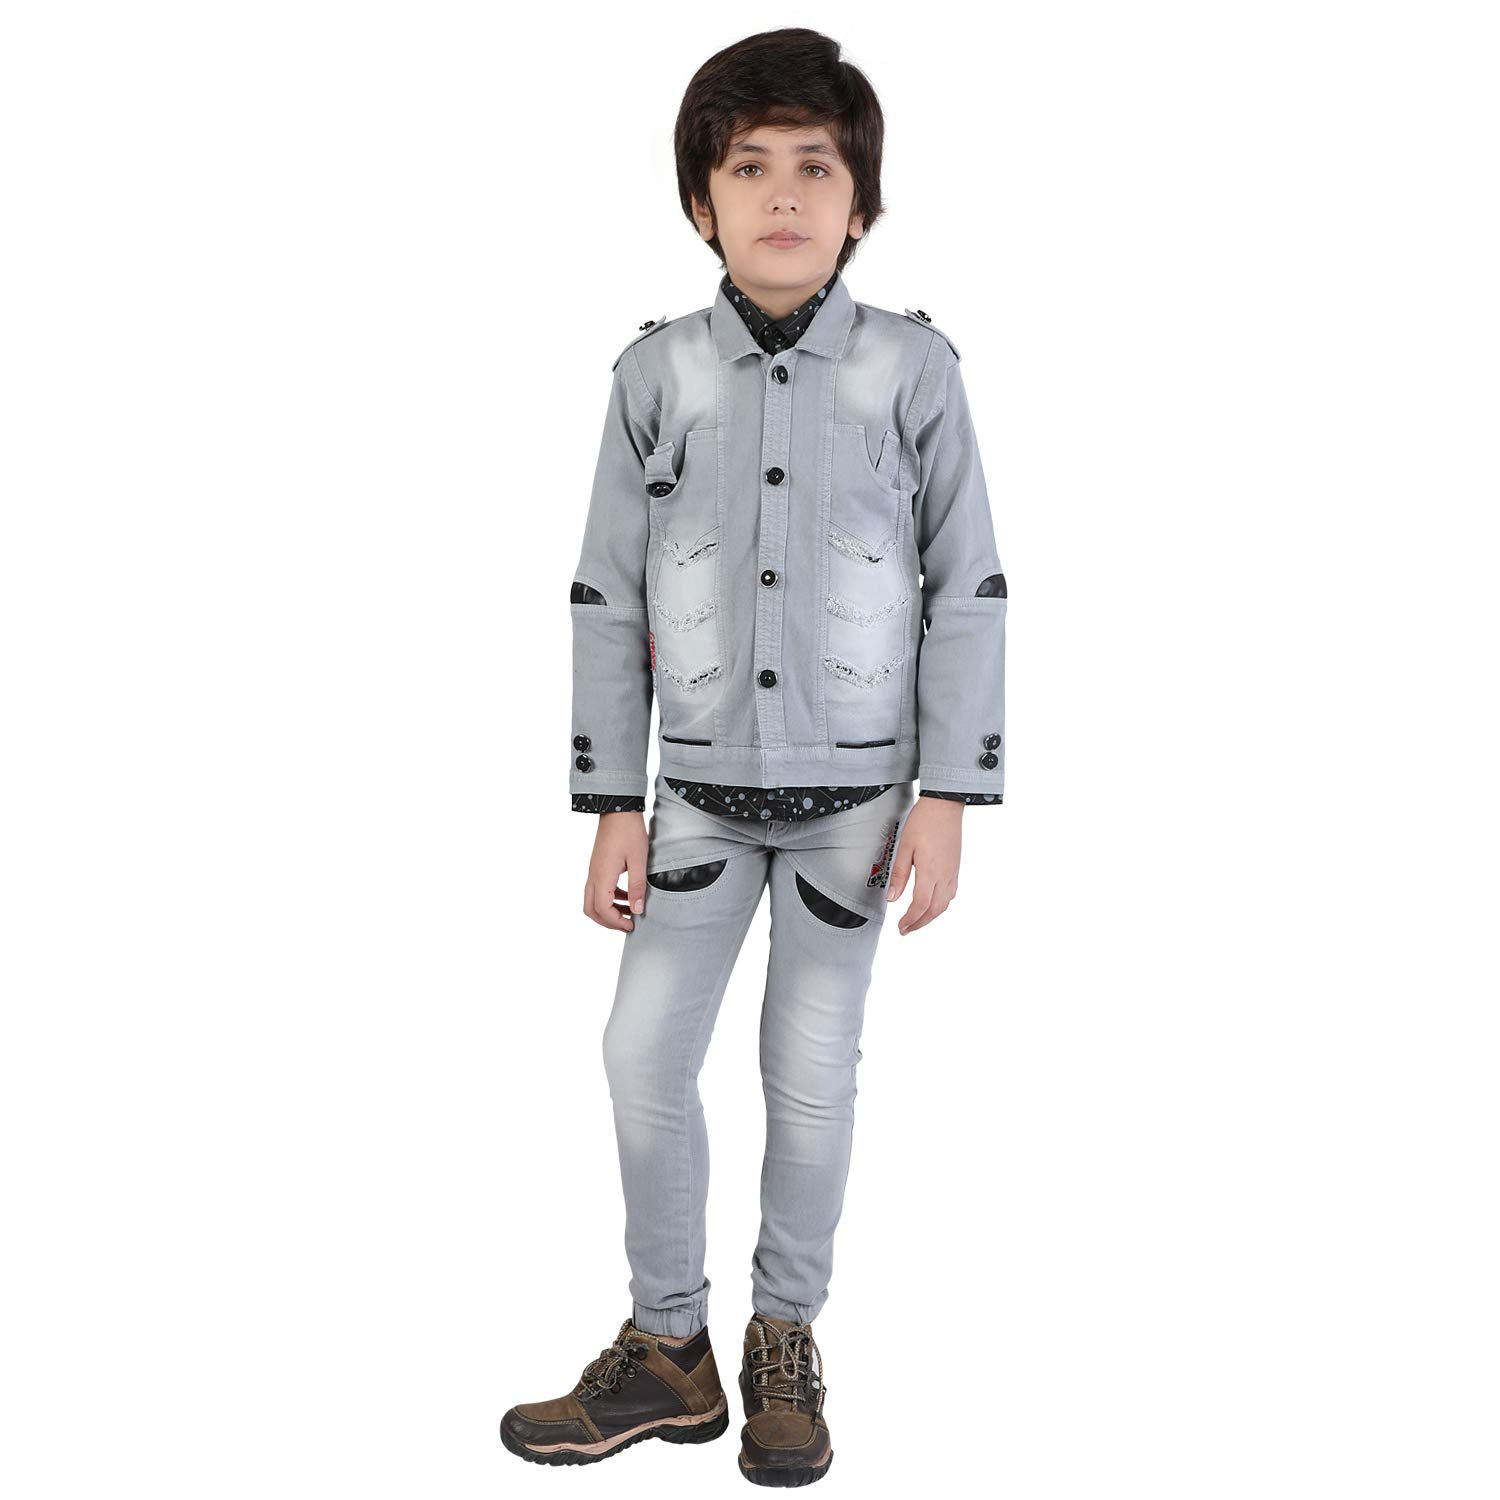 4295e69254 Z G Boys Suit Set of 3 with Stylish Grey Denim Jacket